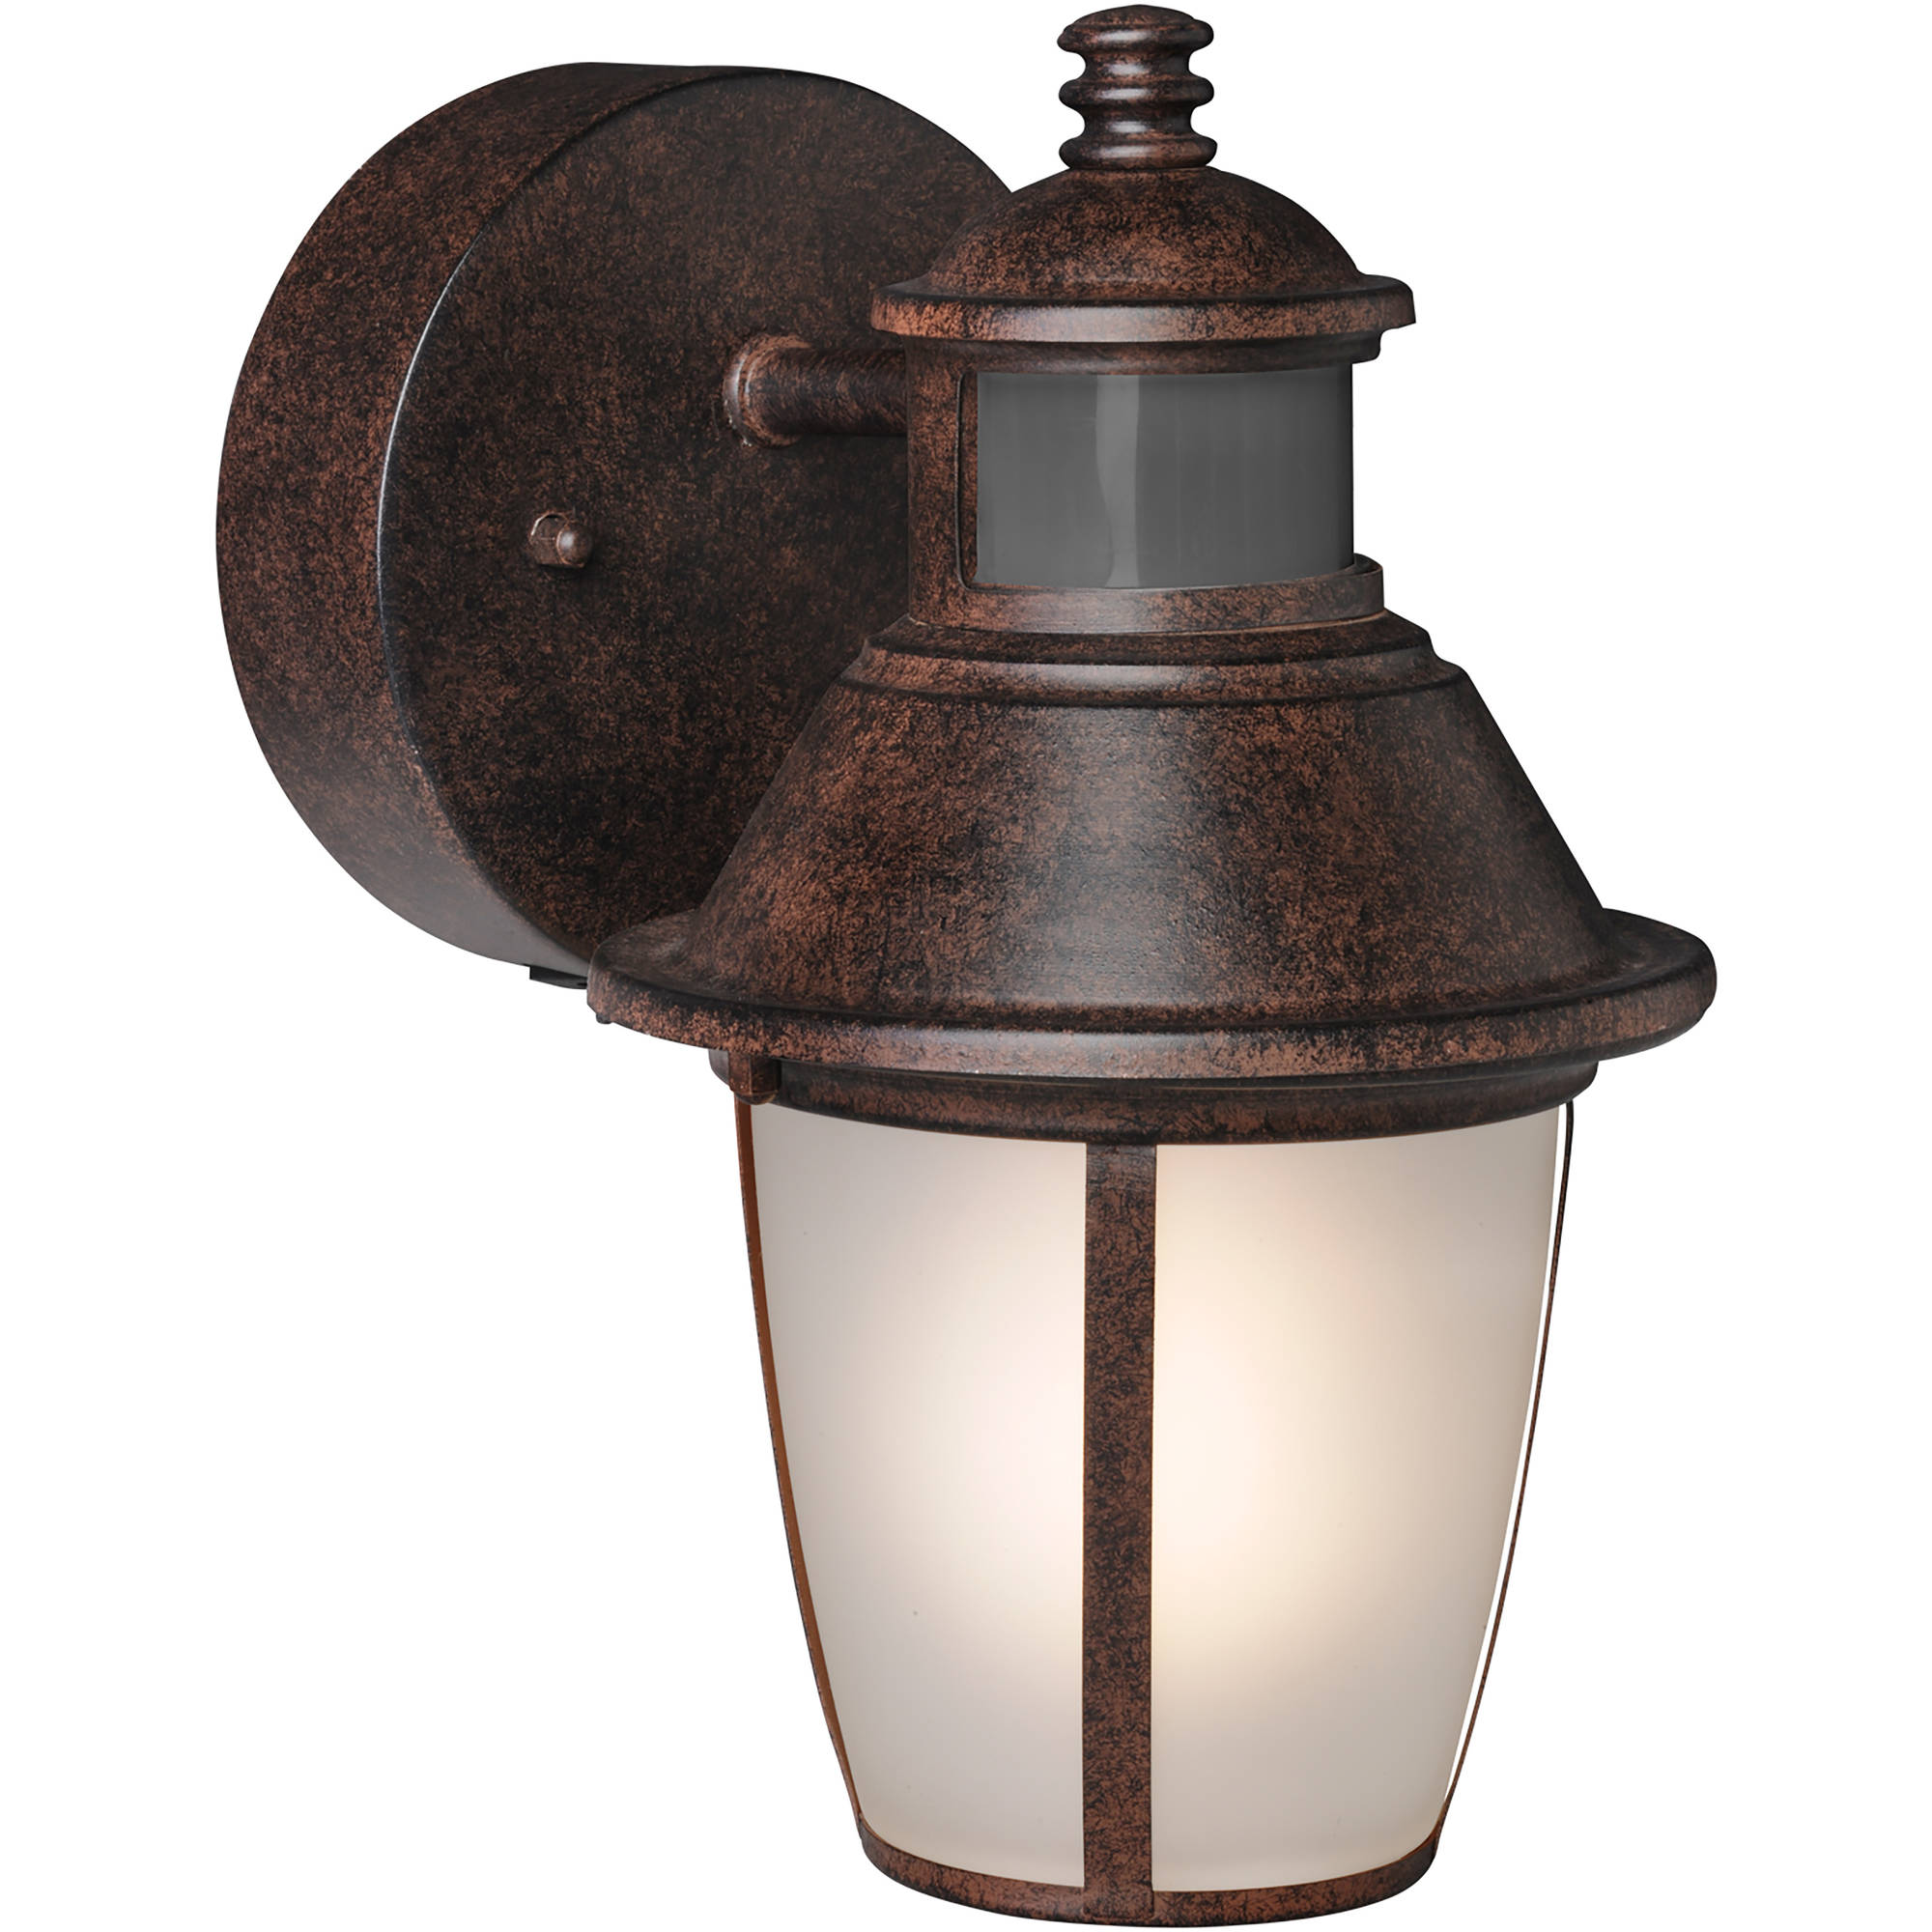 Image of: Brink S Led Motion Activated Security Lantern Antique Bronze Finish Walmart Com Walmart Com